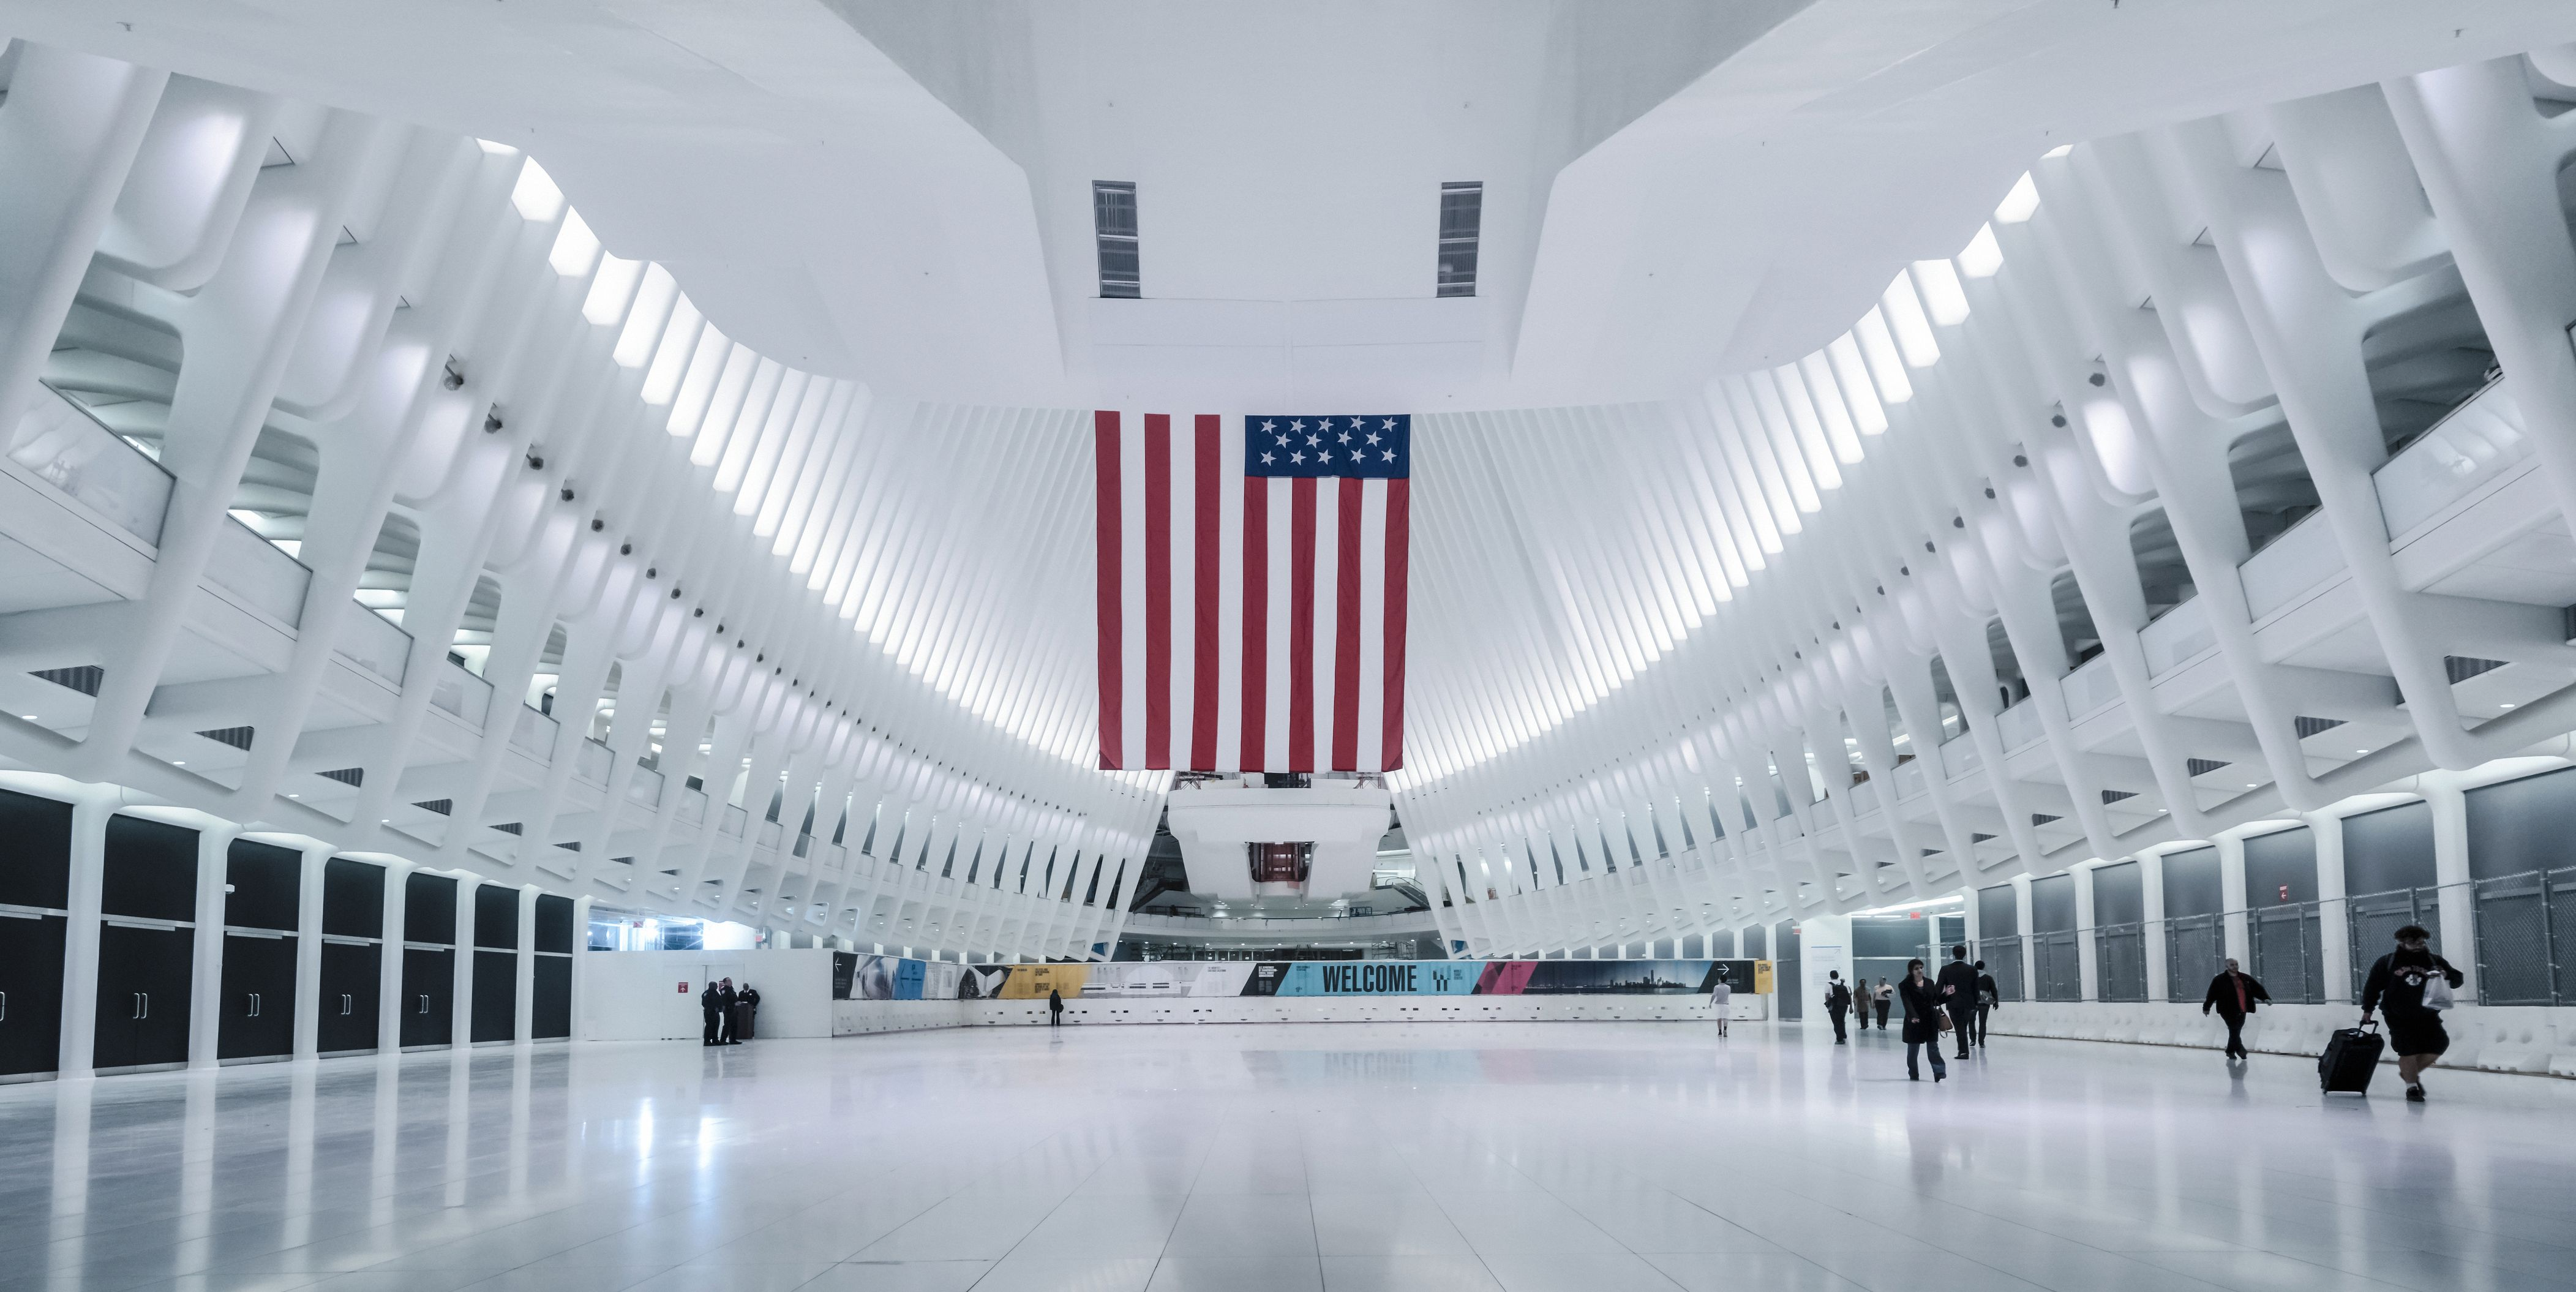 Interior of Oculus train station, New York, USA